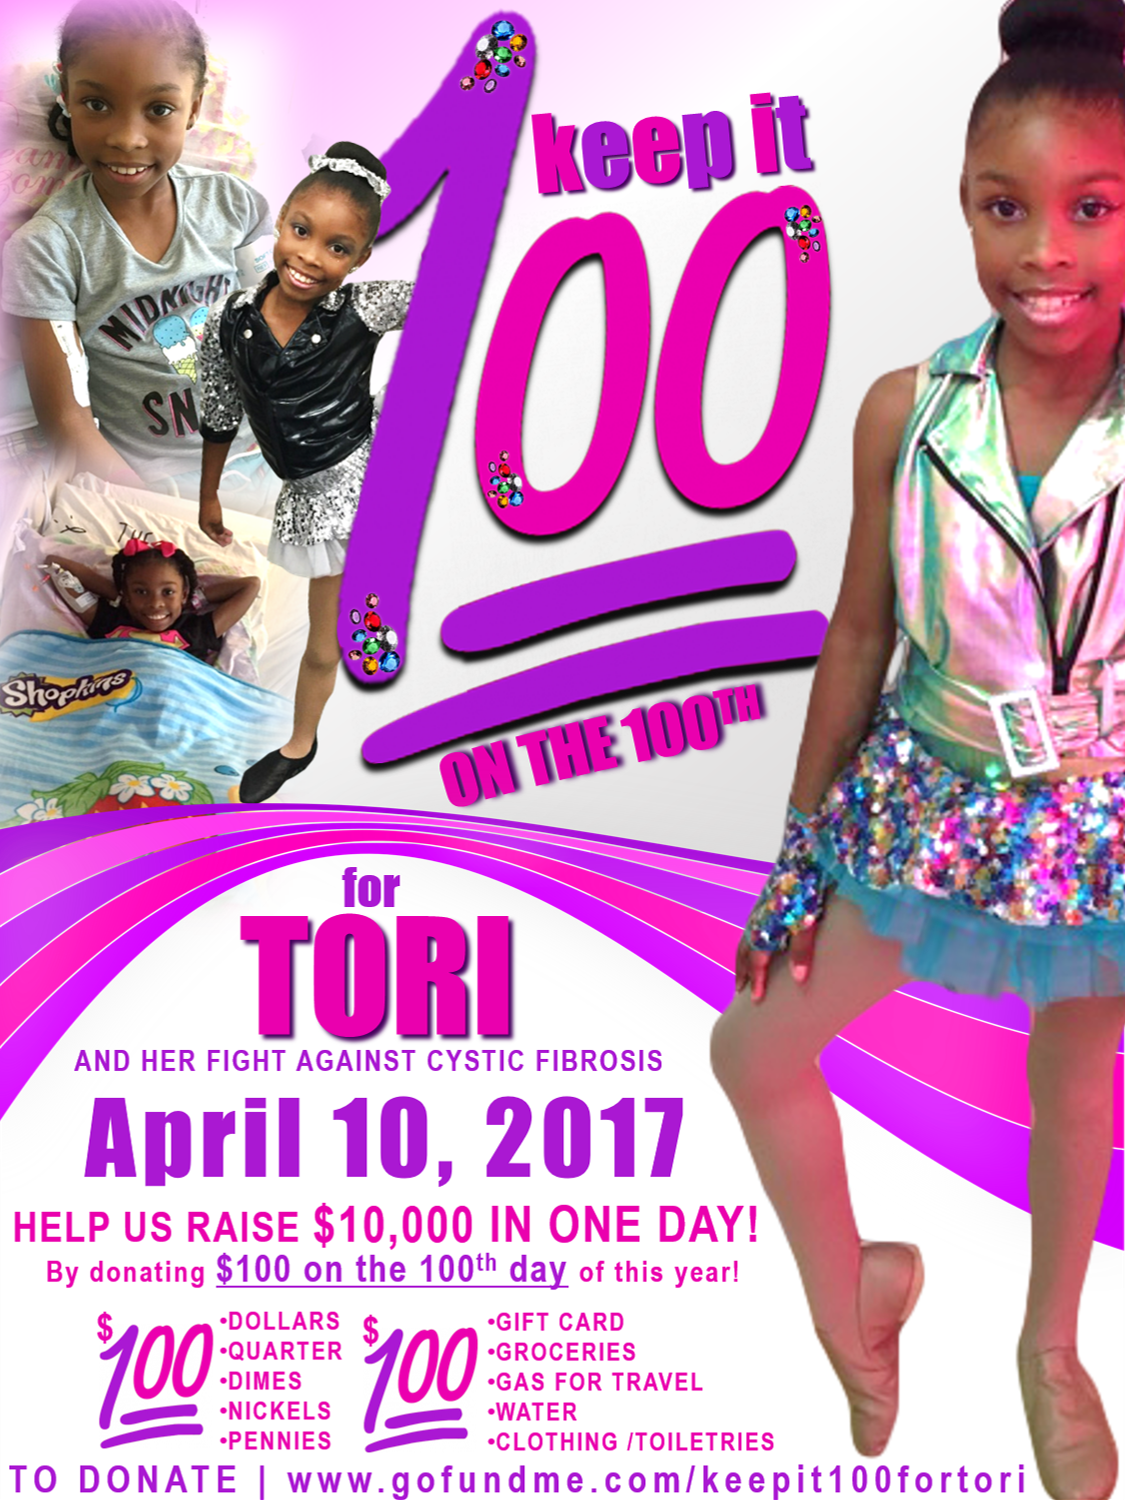 Keep It 100 for TORI flyer.edited